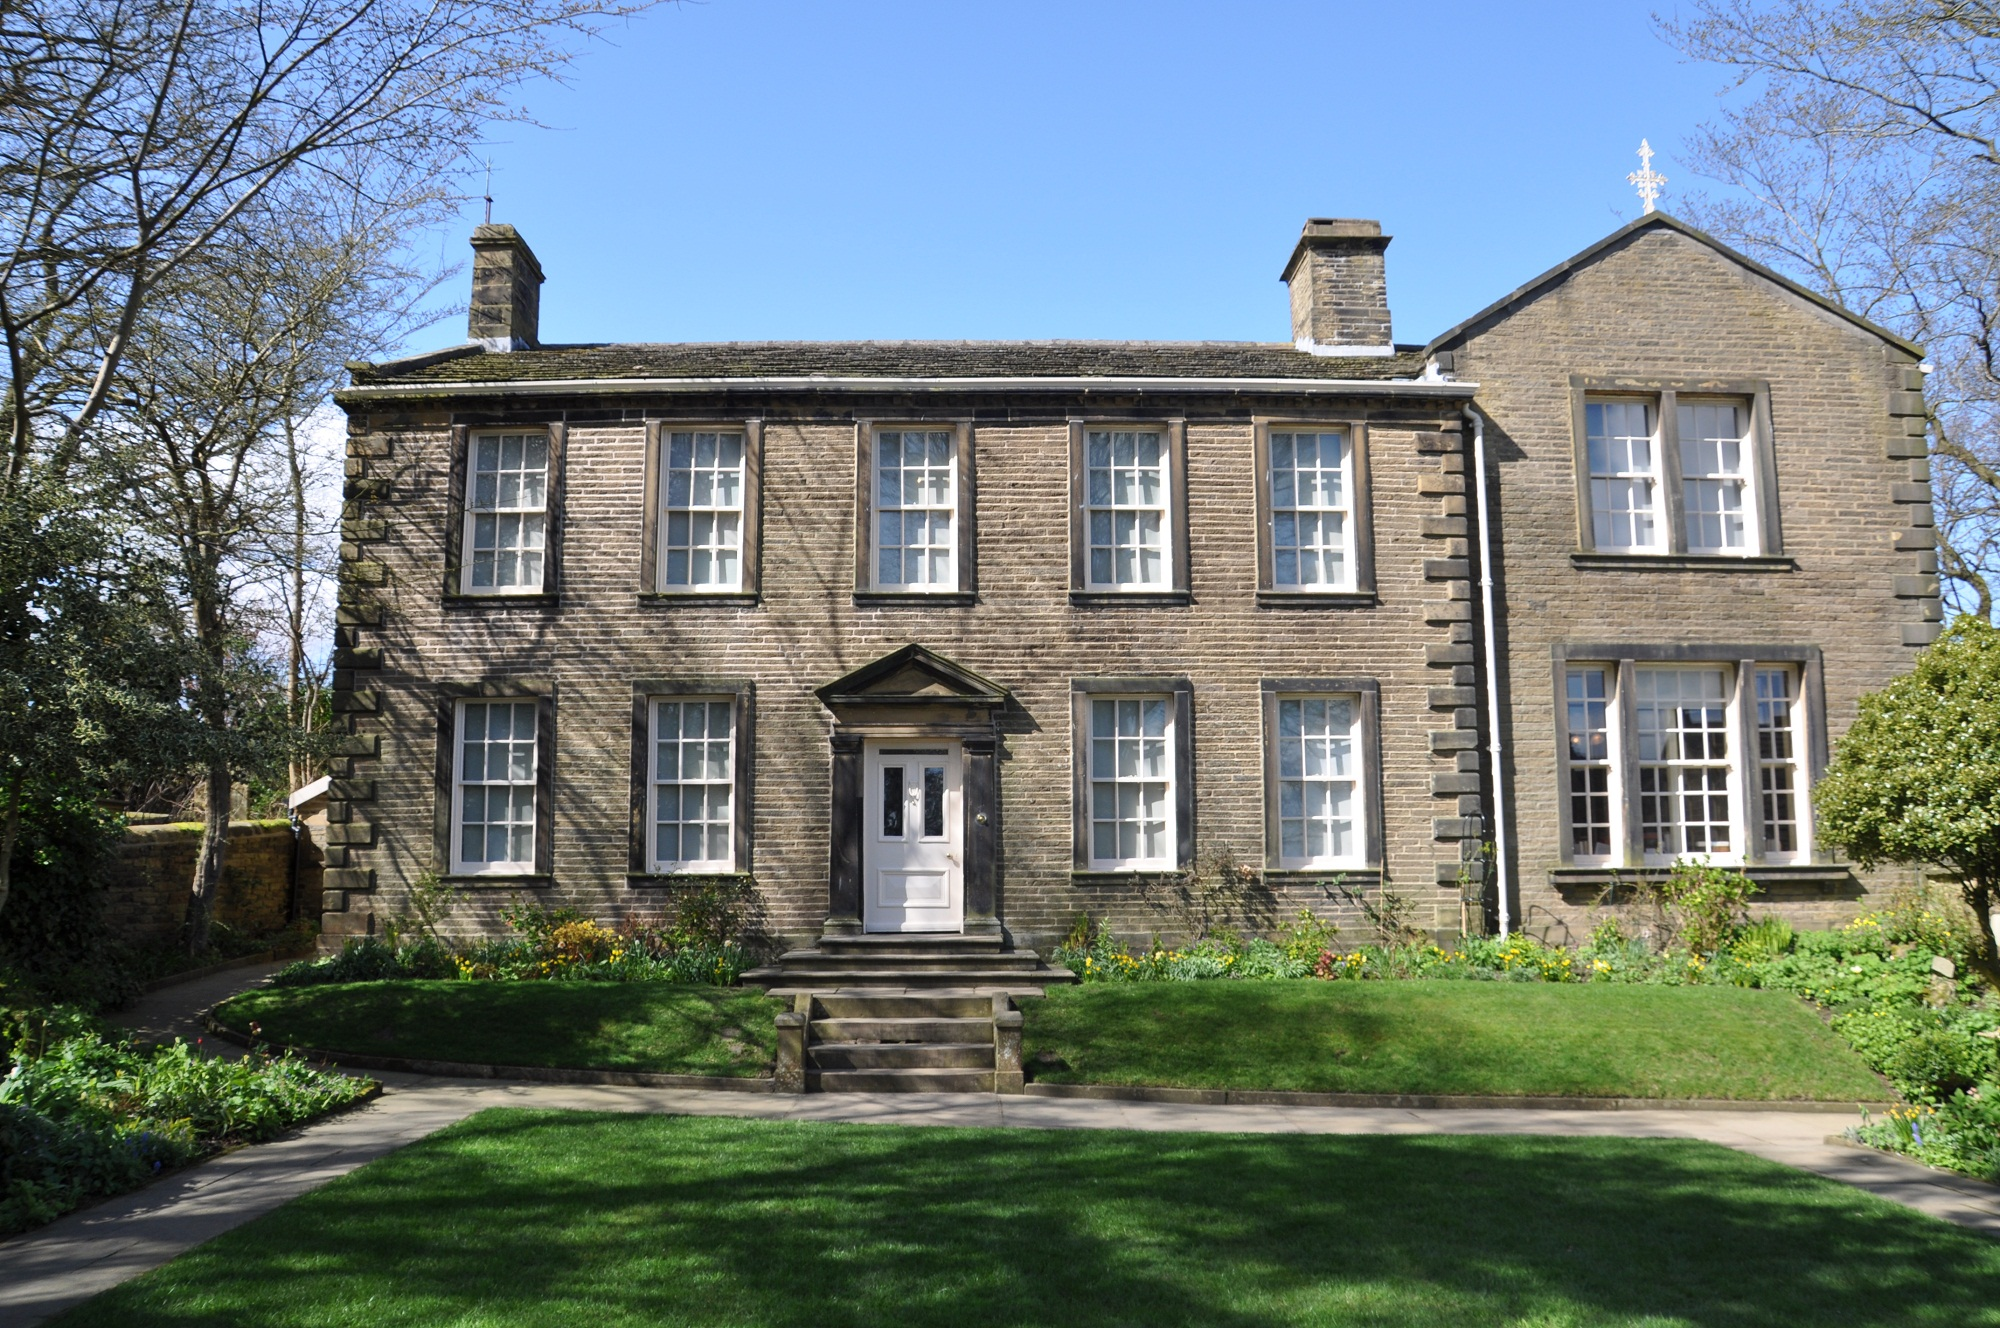 Bronte Parsonage is a tourist hotspot